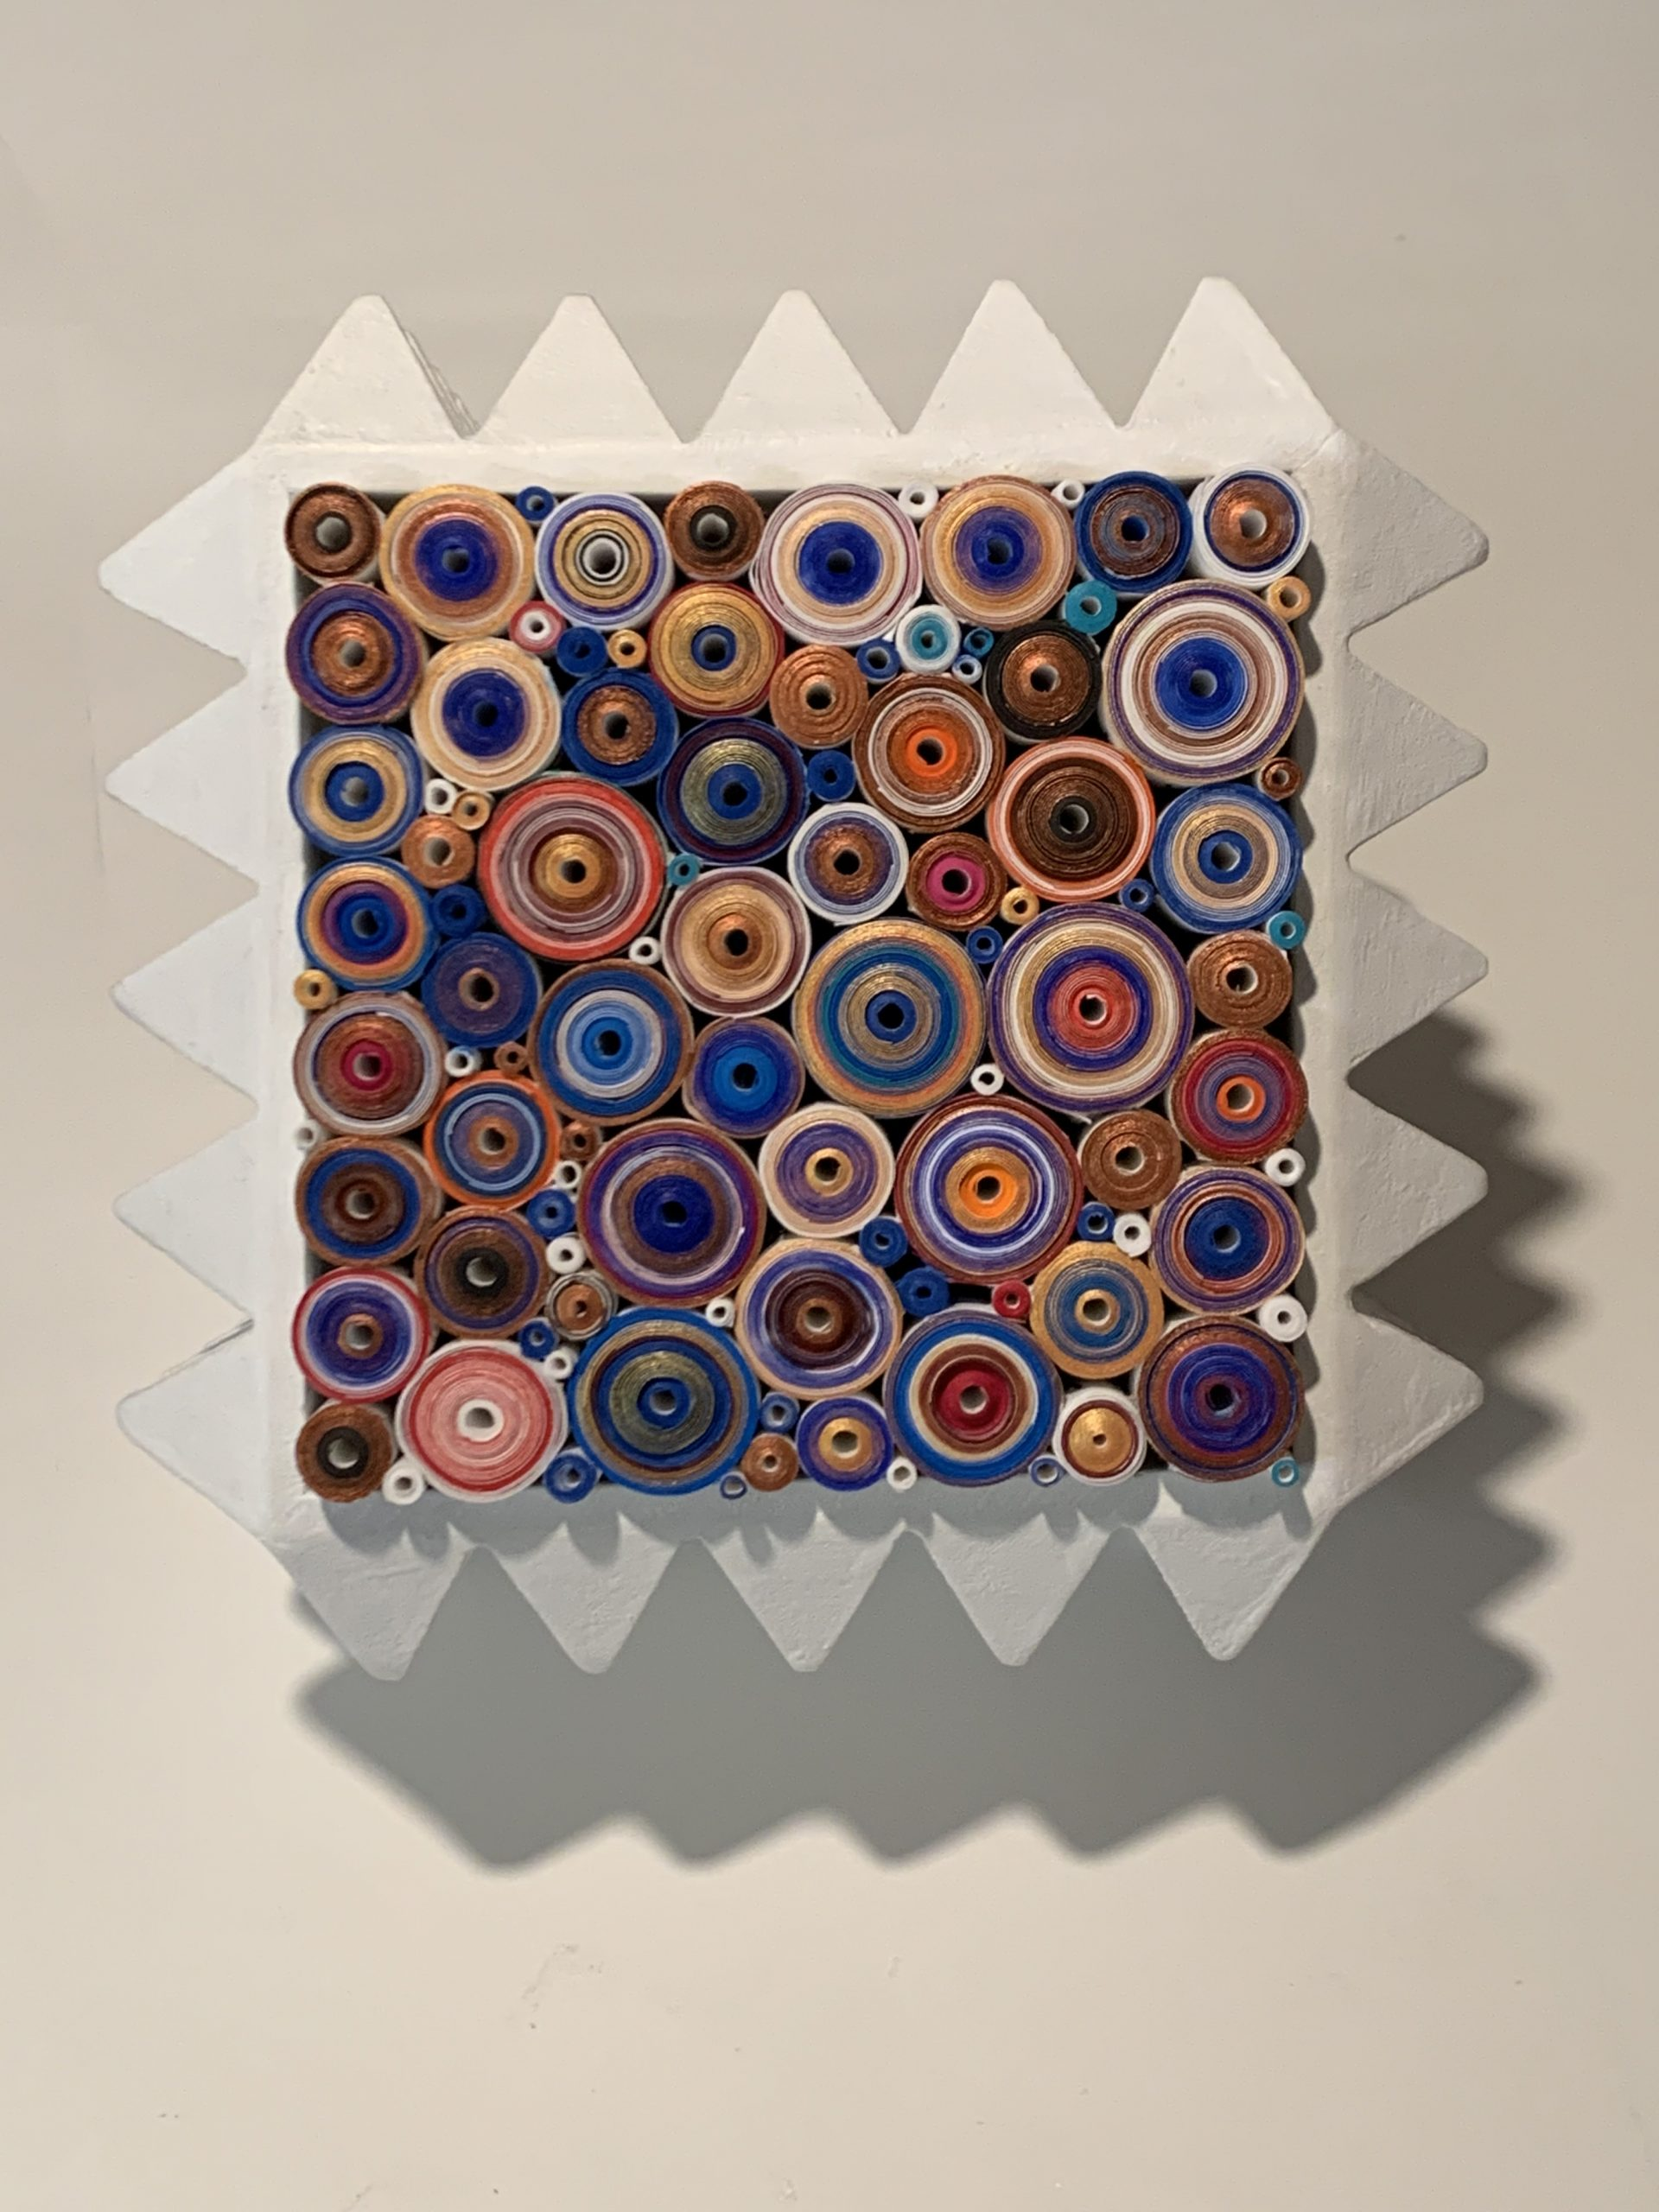 Cube, 2021, Rolled paper with embedded text, ink and acrylic in hand cut spiked cube form, 7 x 7 x 7 in / 17.78 x 17.78 x 17.78 cm